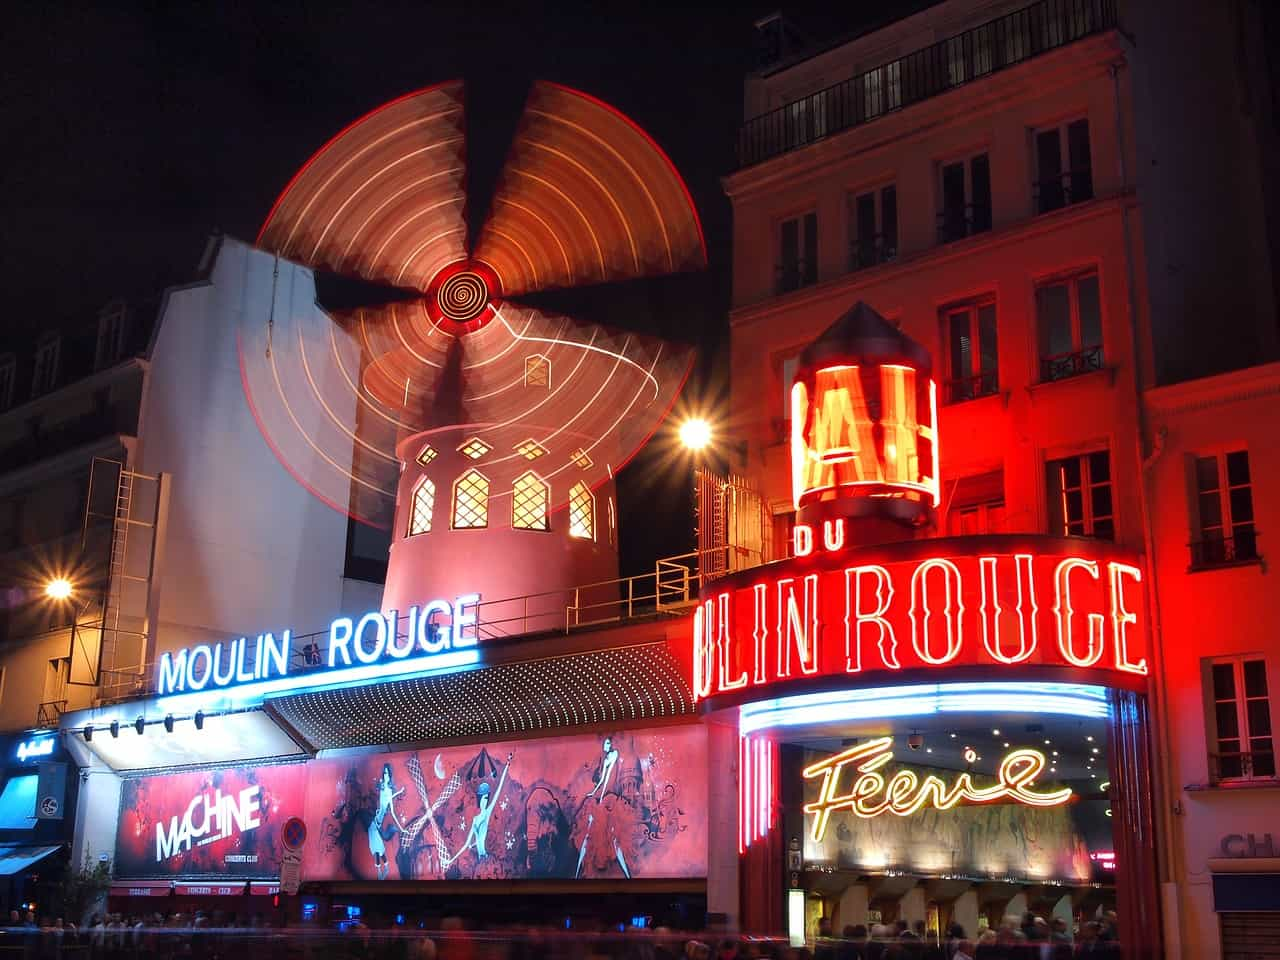 Moulin rouge is one of the best paris photography locations